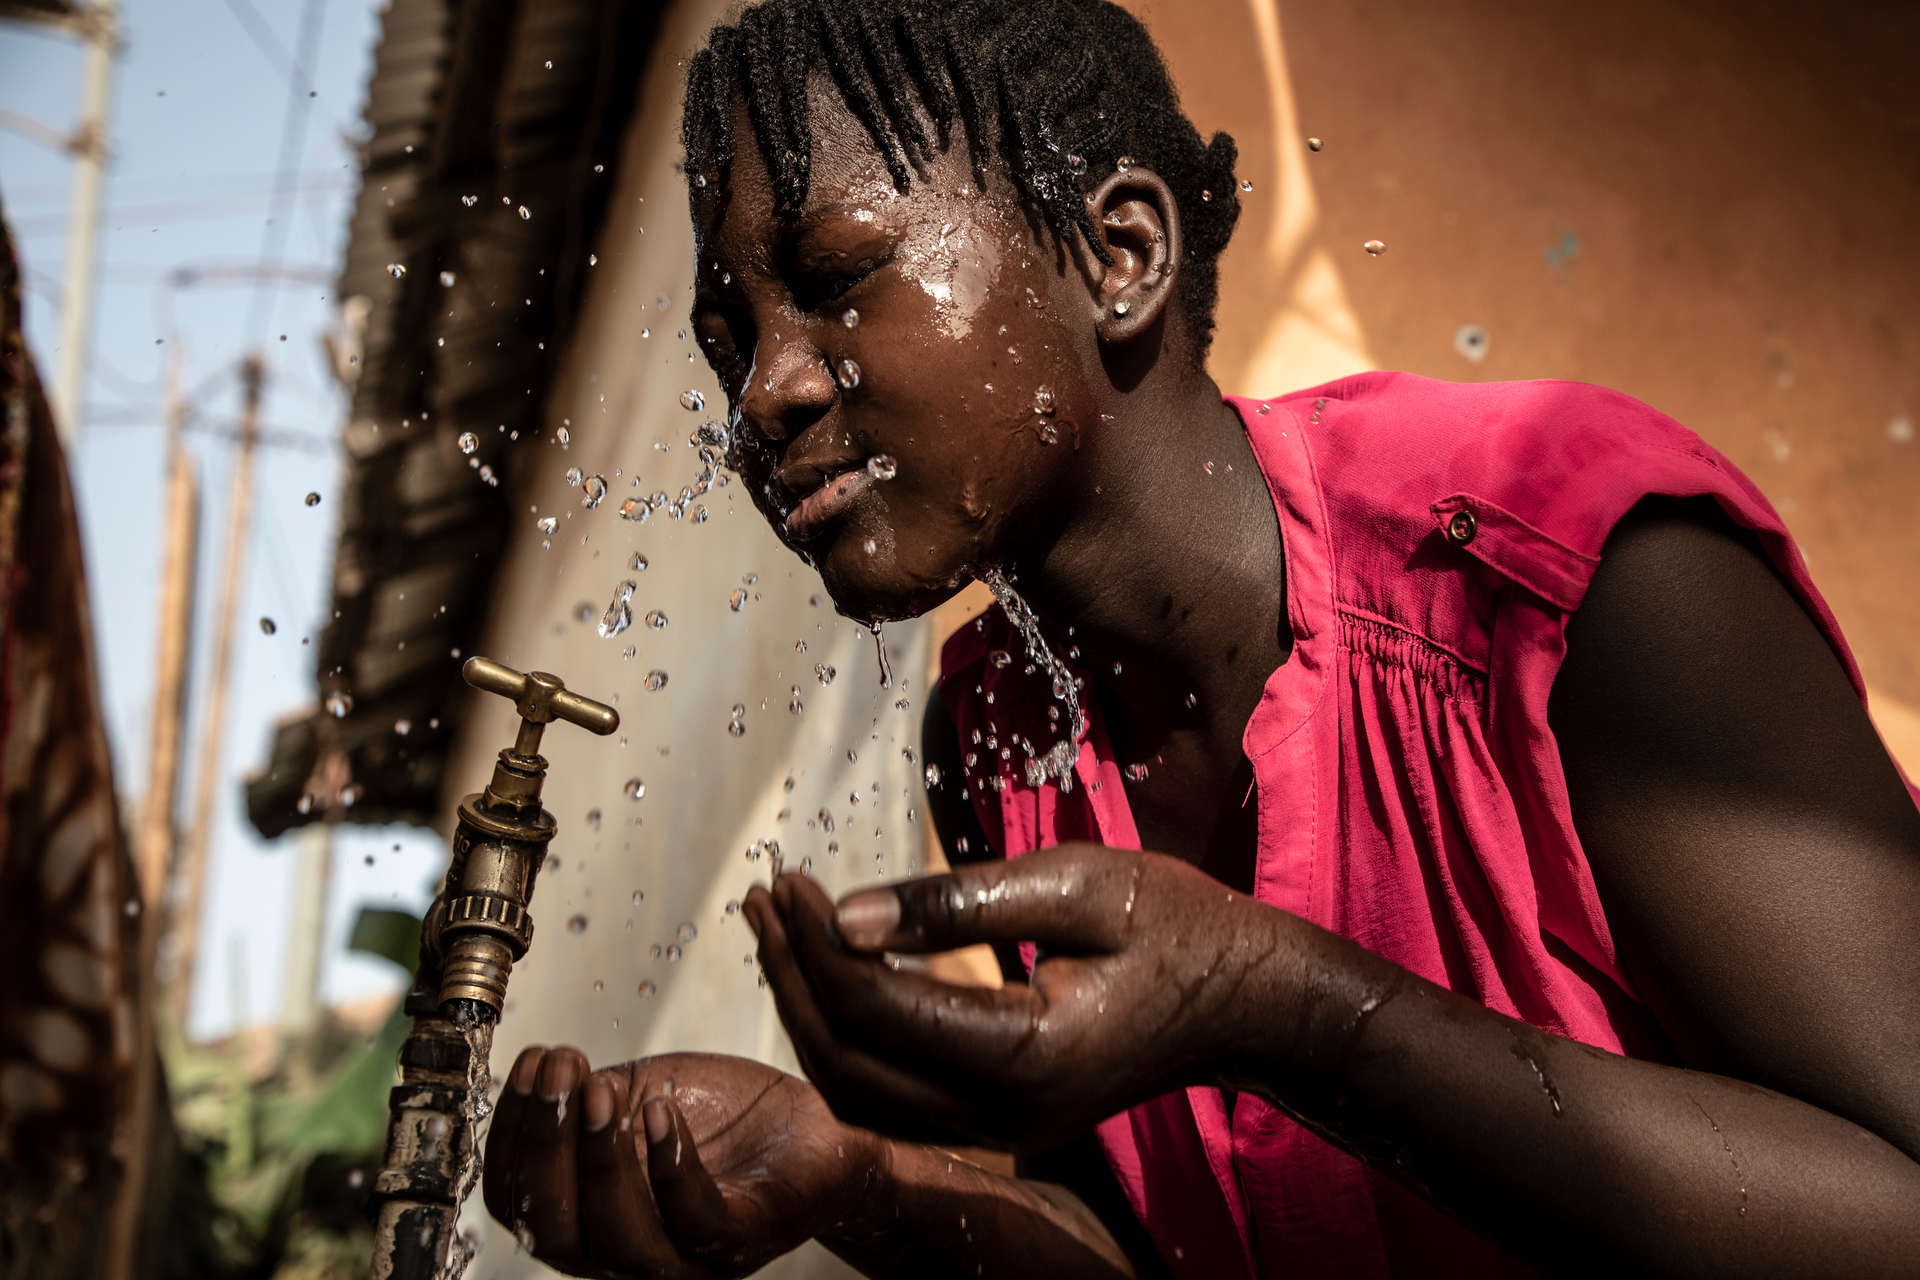 Ya Nima Jaiteh, 14, washes her face at a tap in her family's compound.